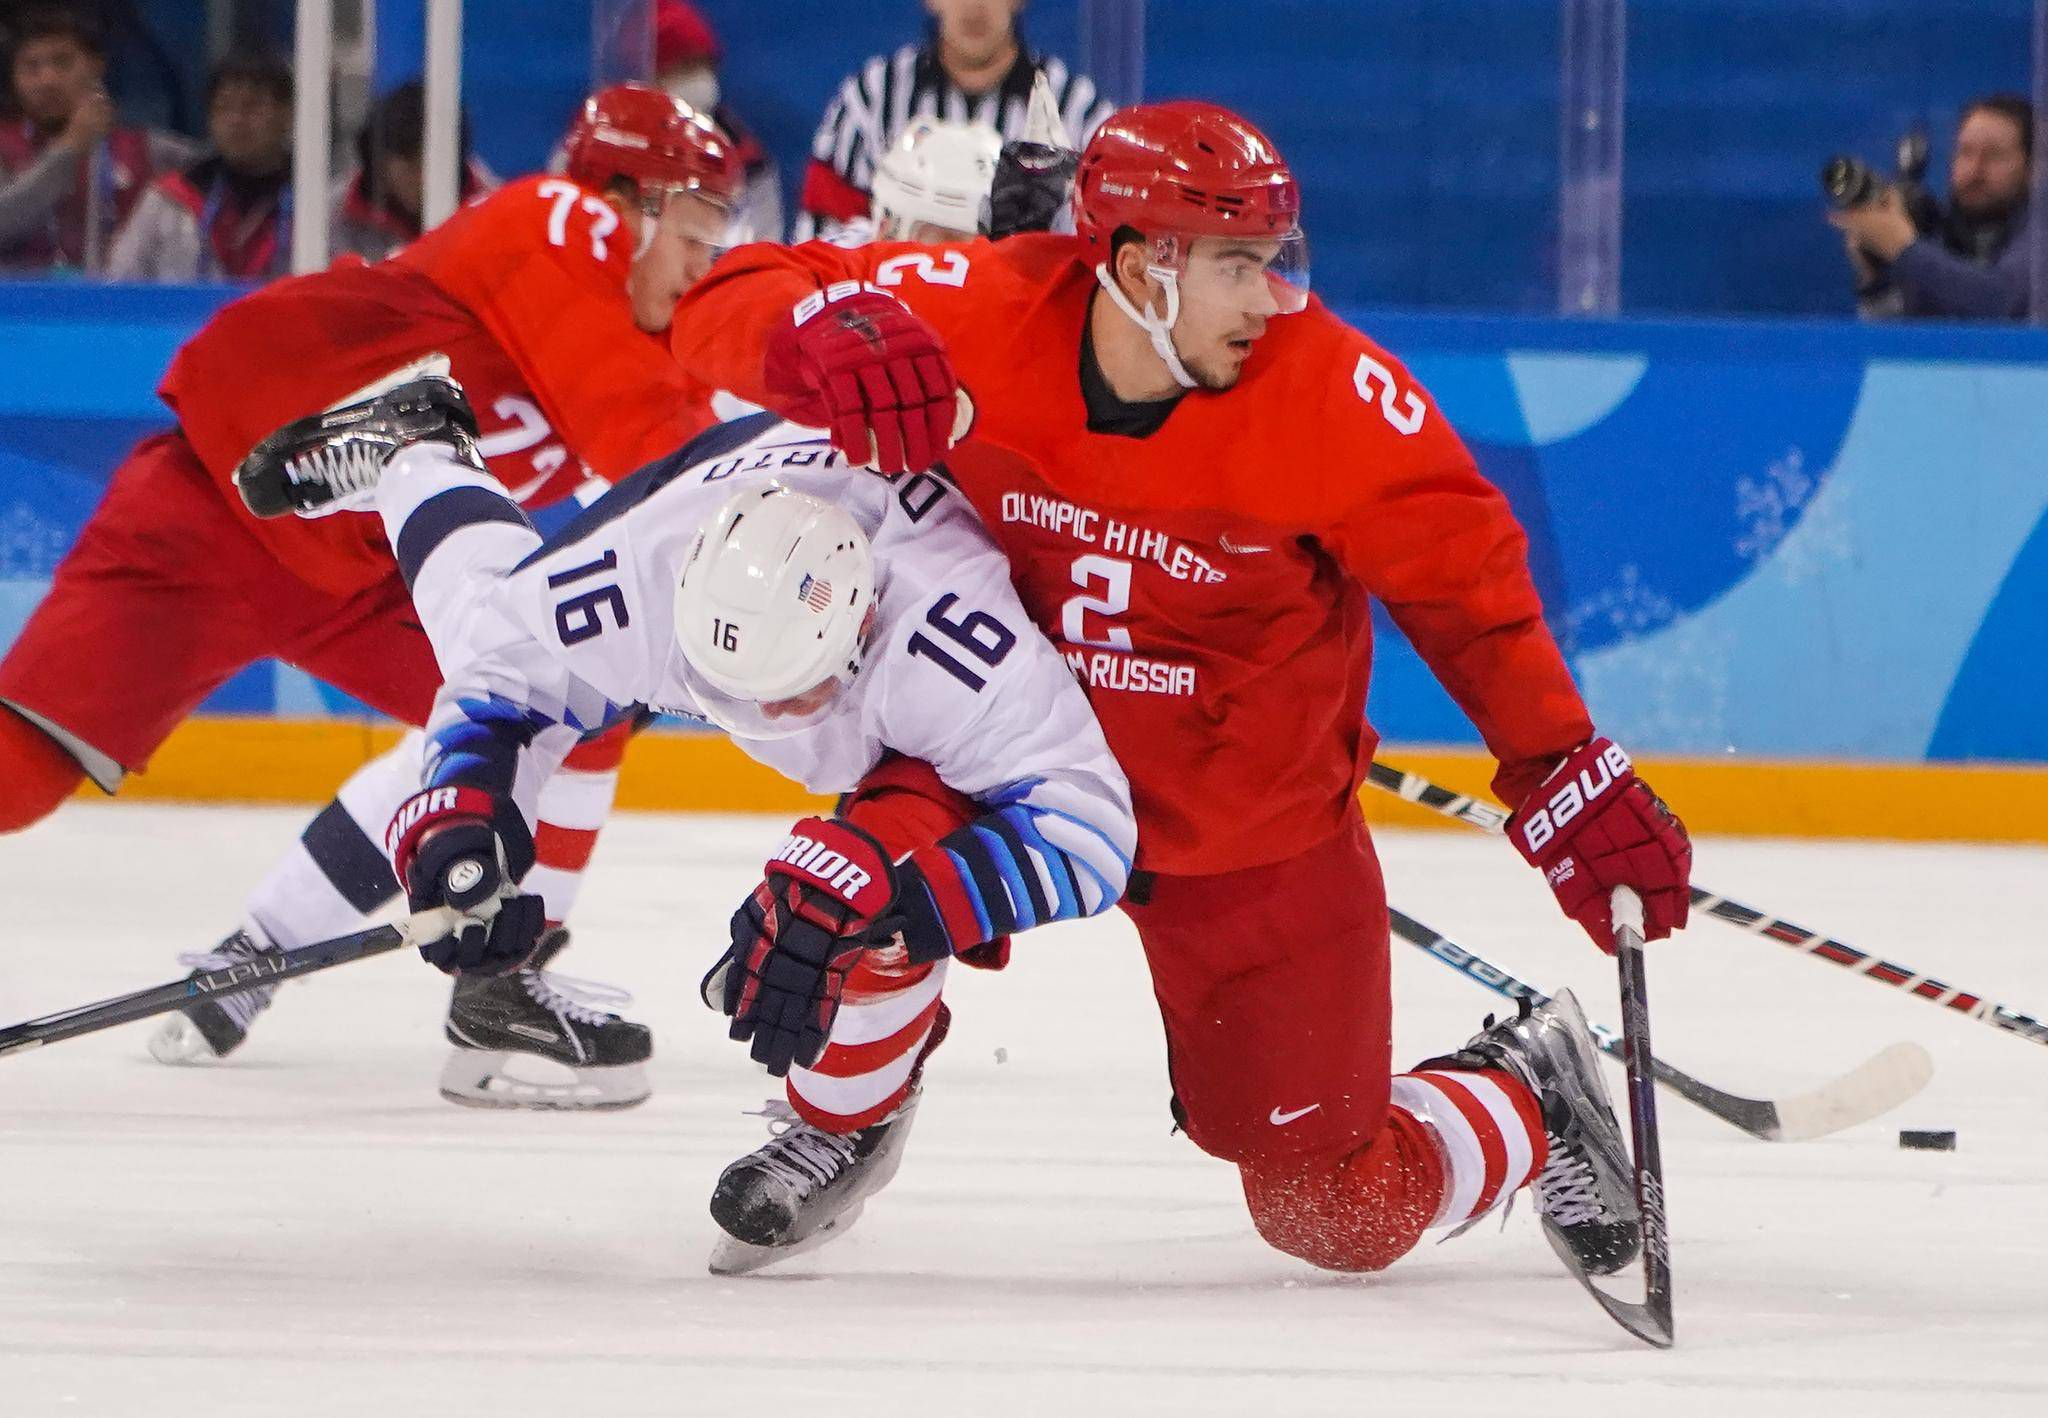 Welcome to hockey in the era of Trump  Russians make a point with rough  rink win over U.S. 0f03e75b0f2